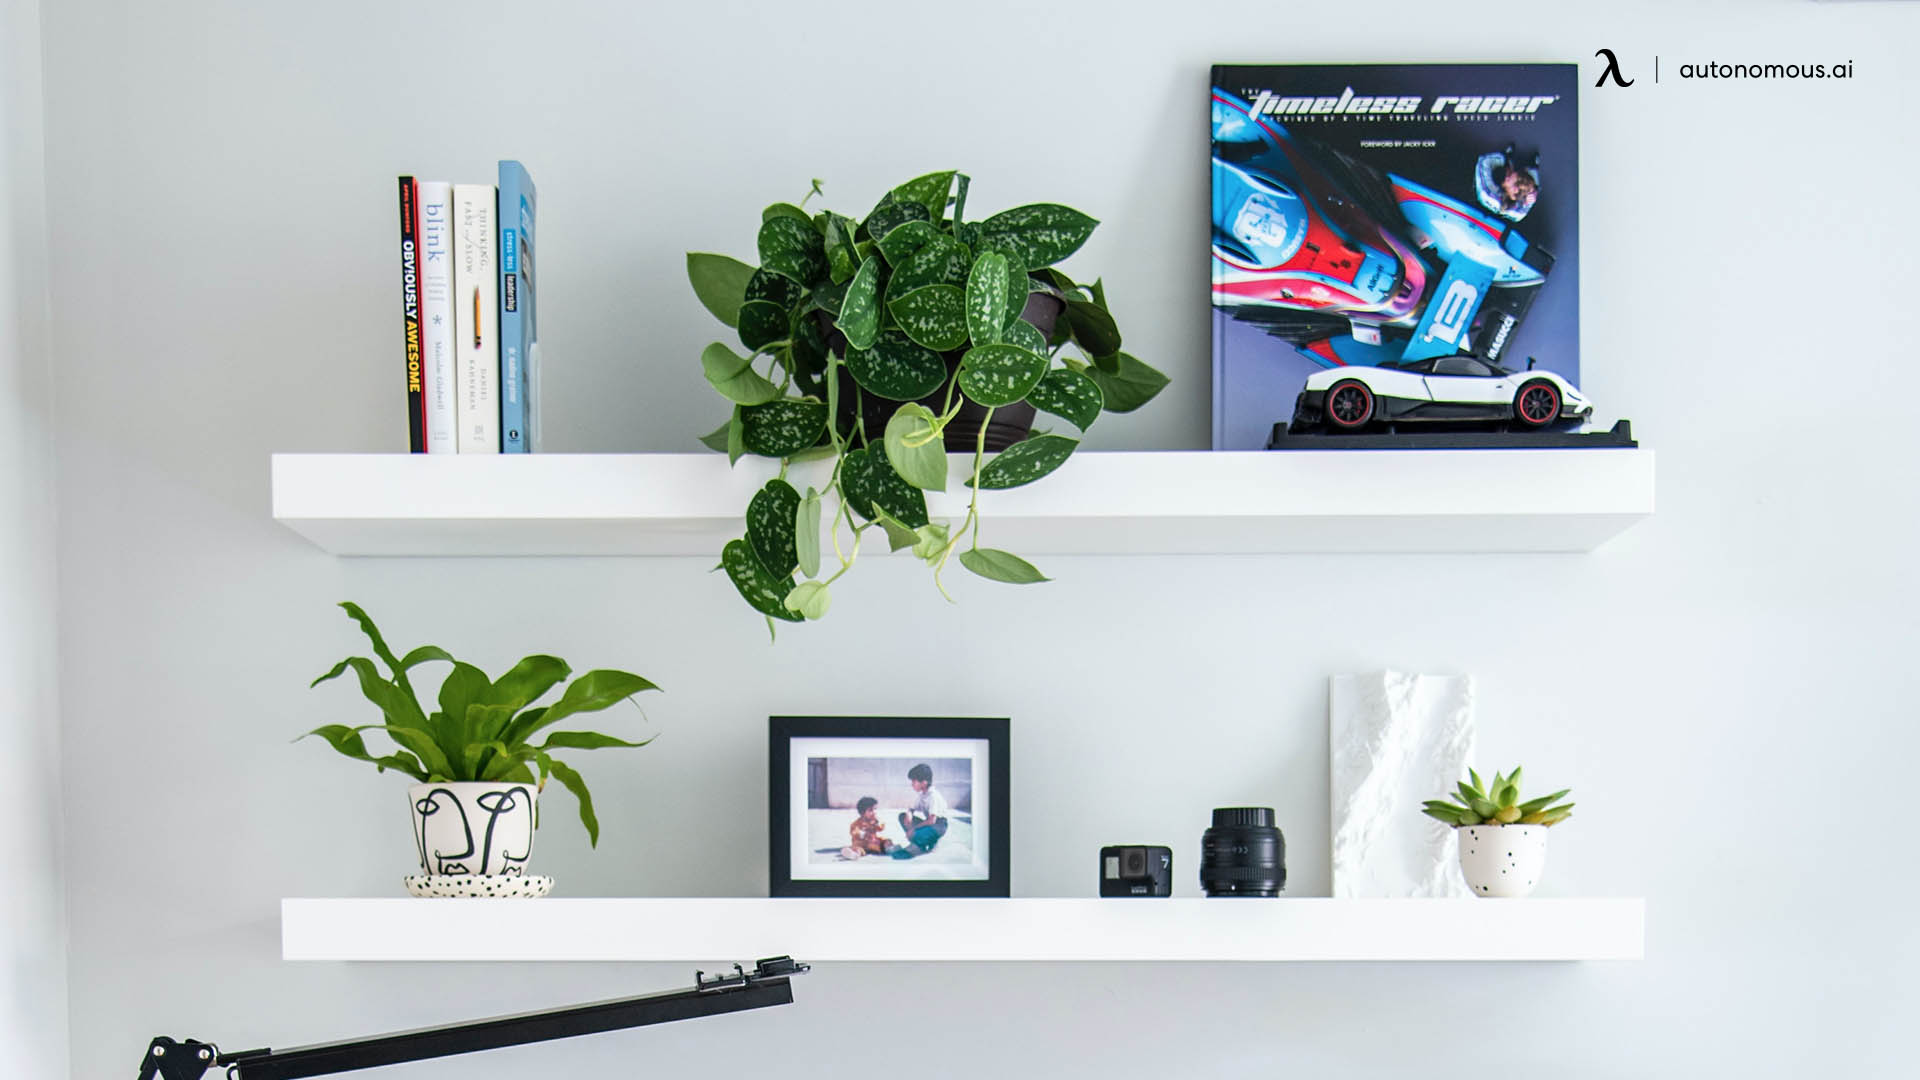 Adding Space for Better Office Organization with Shelves